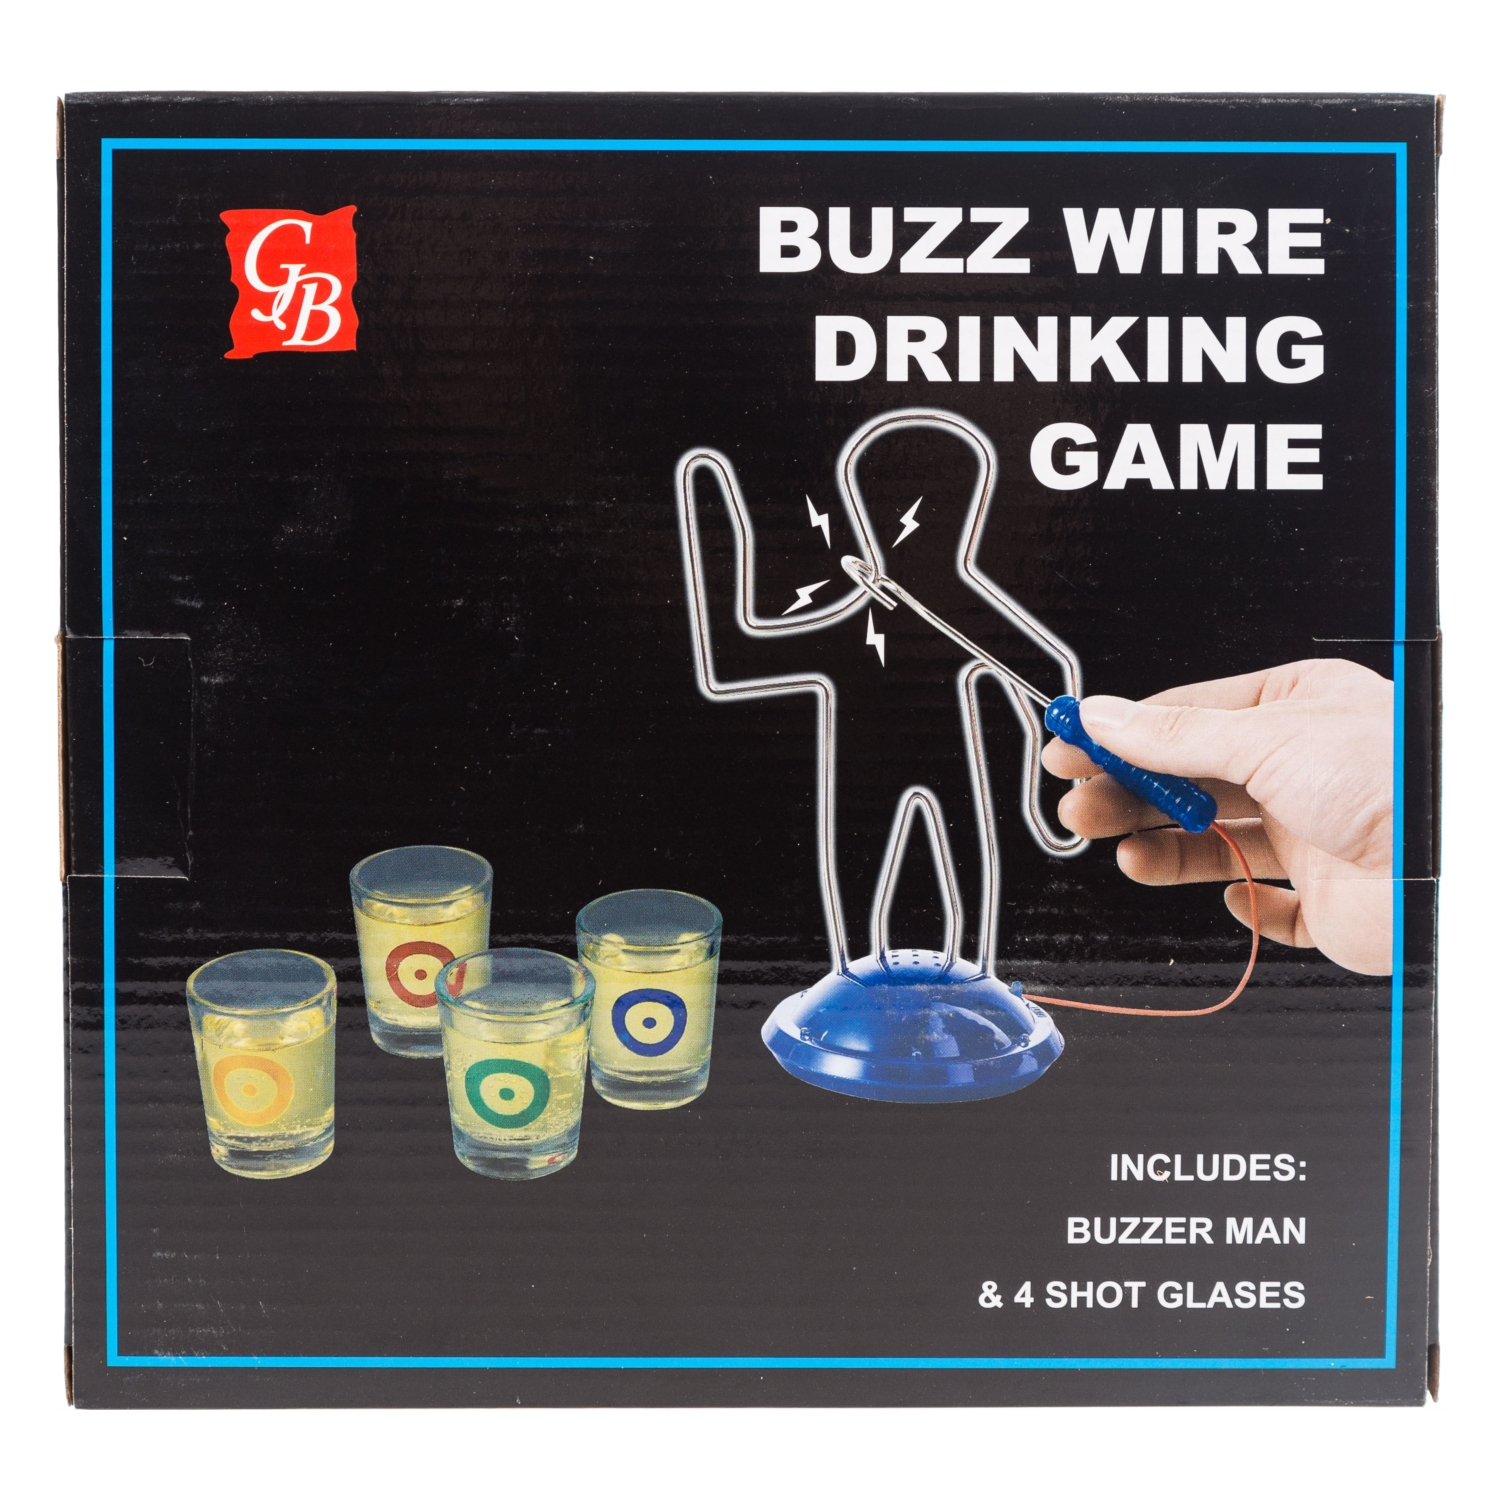 BUZZ WIRE OYUN